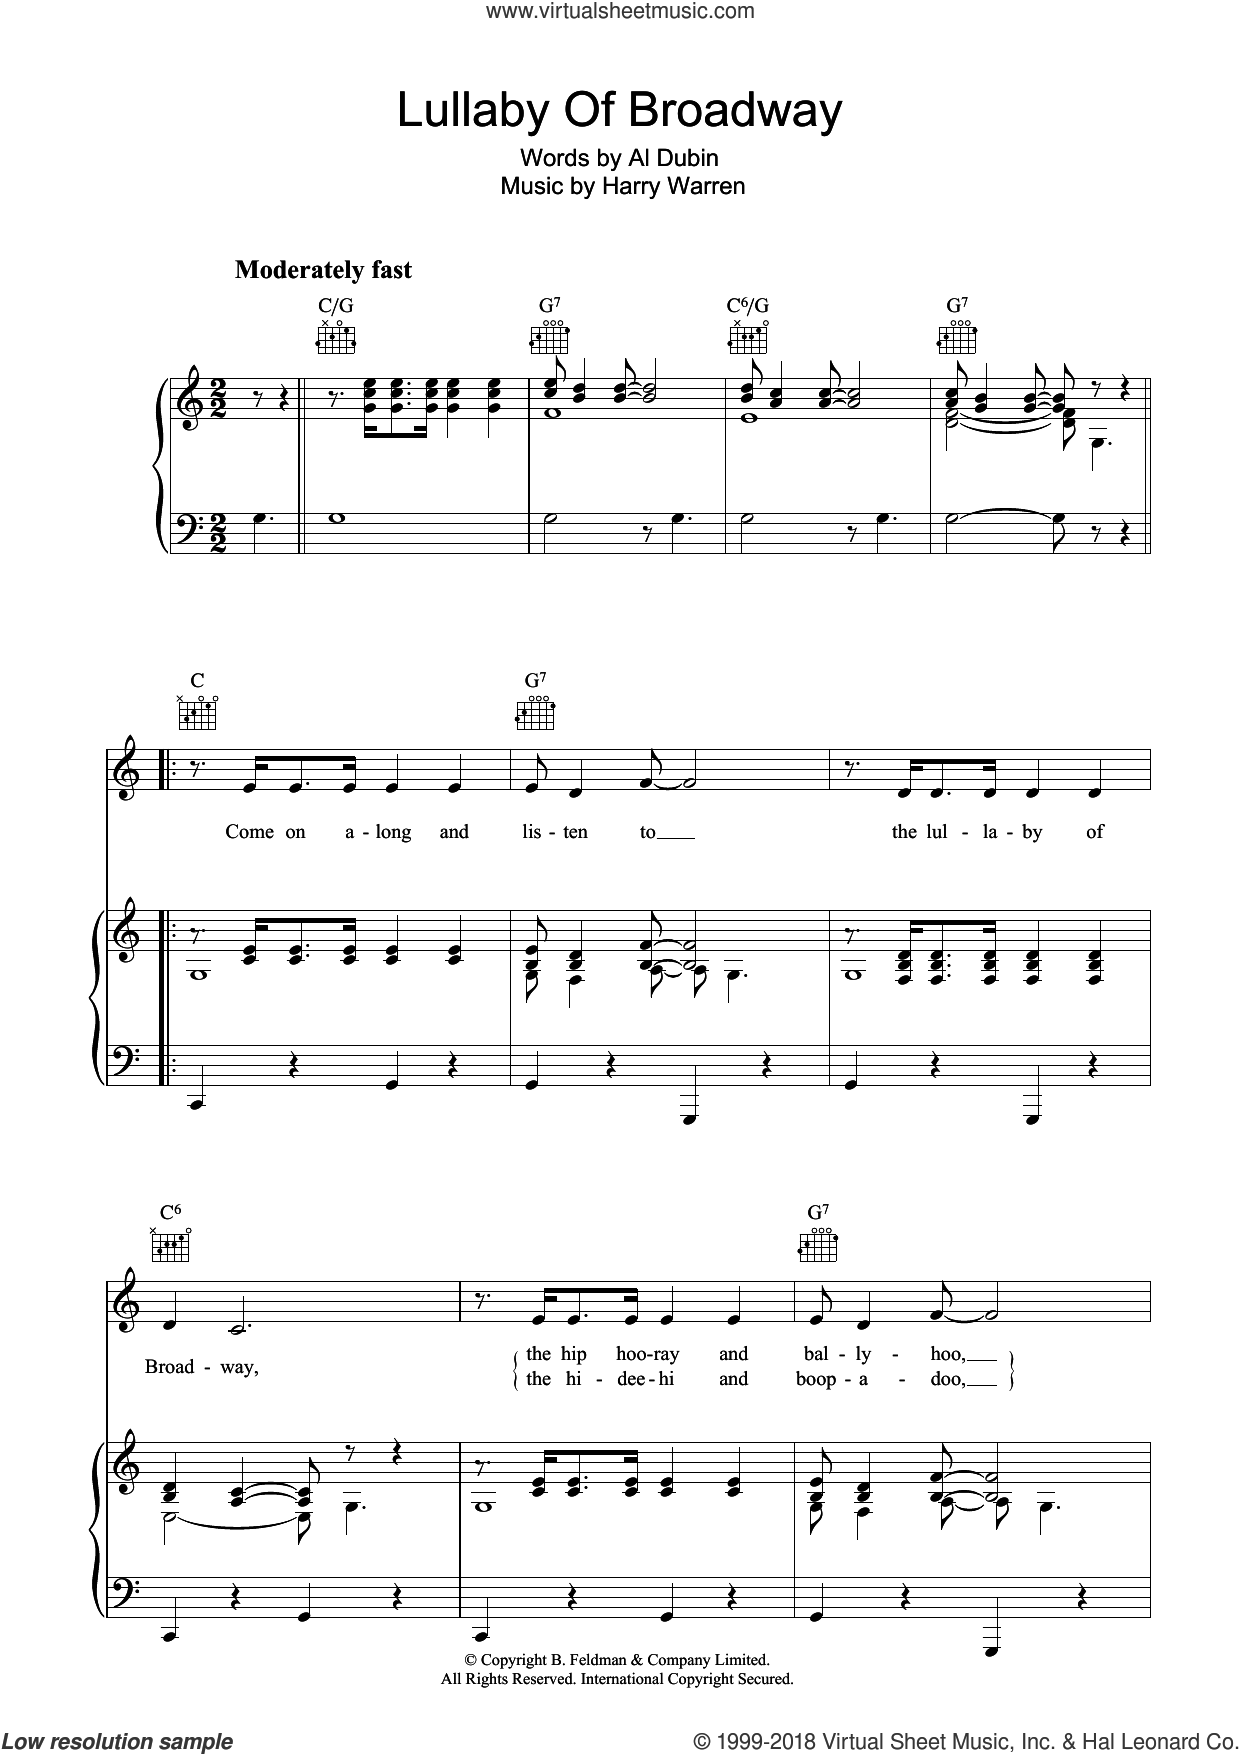 Lullaby Of Broadway sheet music for voice, piano or guitar by Harry Warren and Al Dubin, intermediate skill level